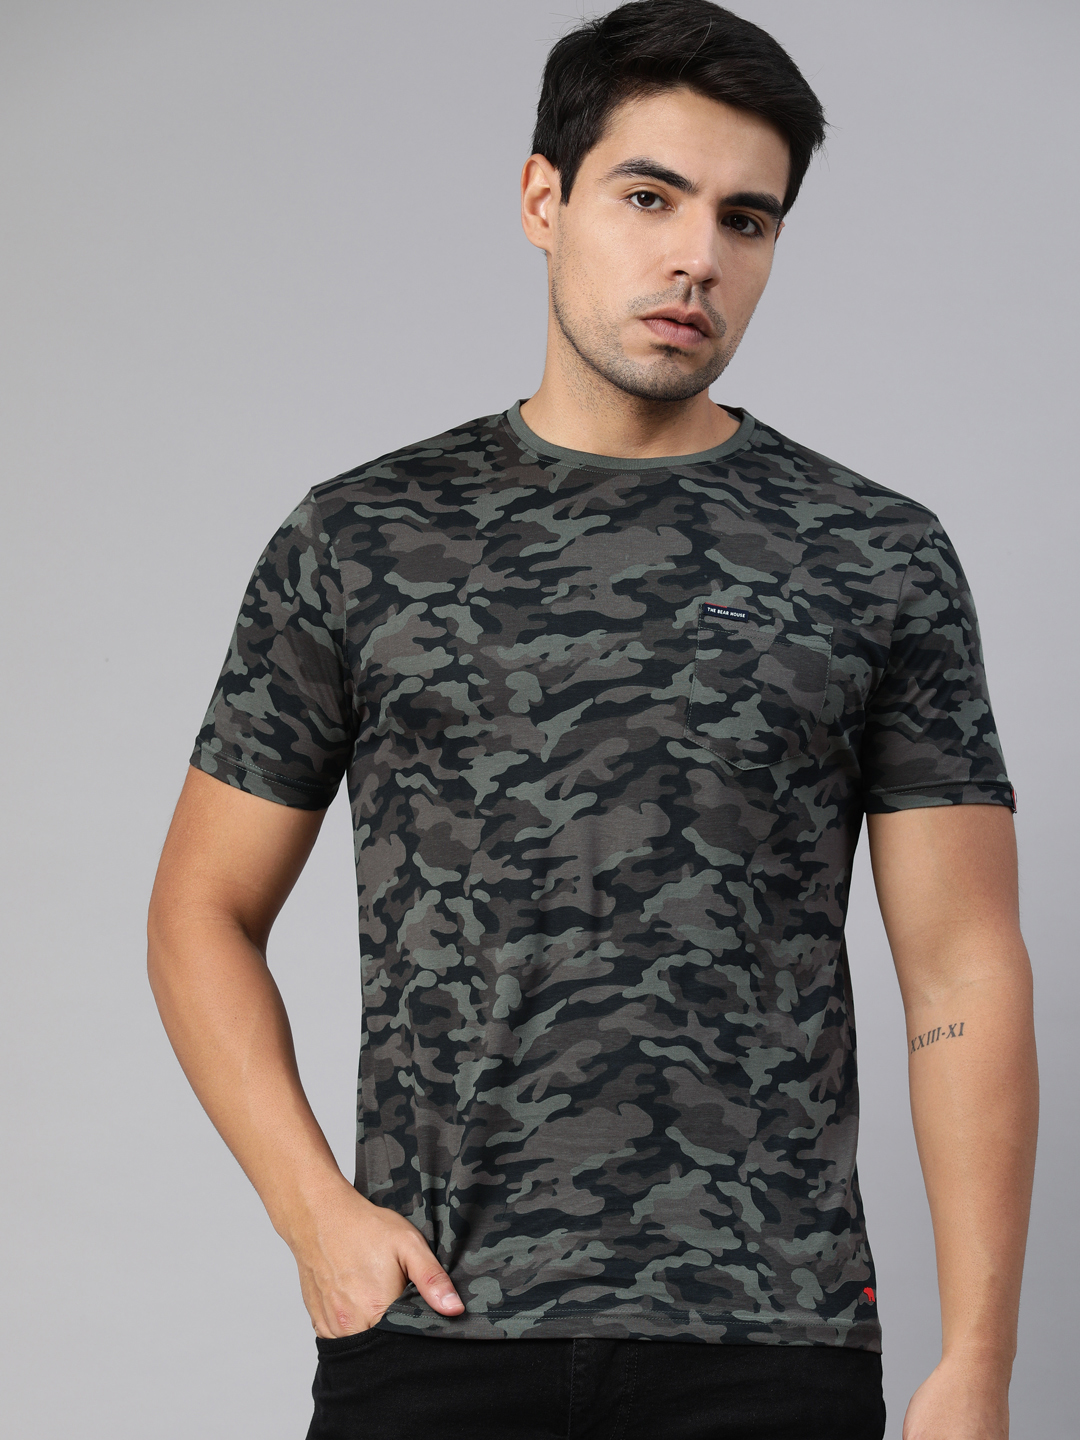 The Bear House   Round Neck Printed T-Shirt